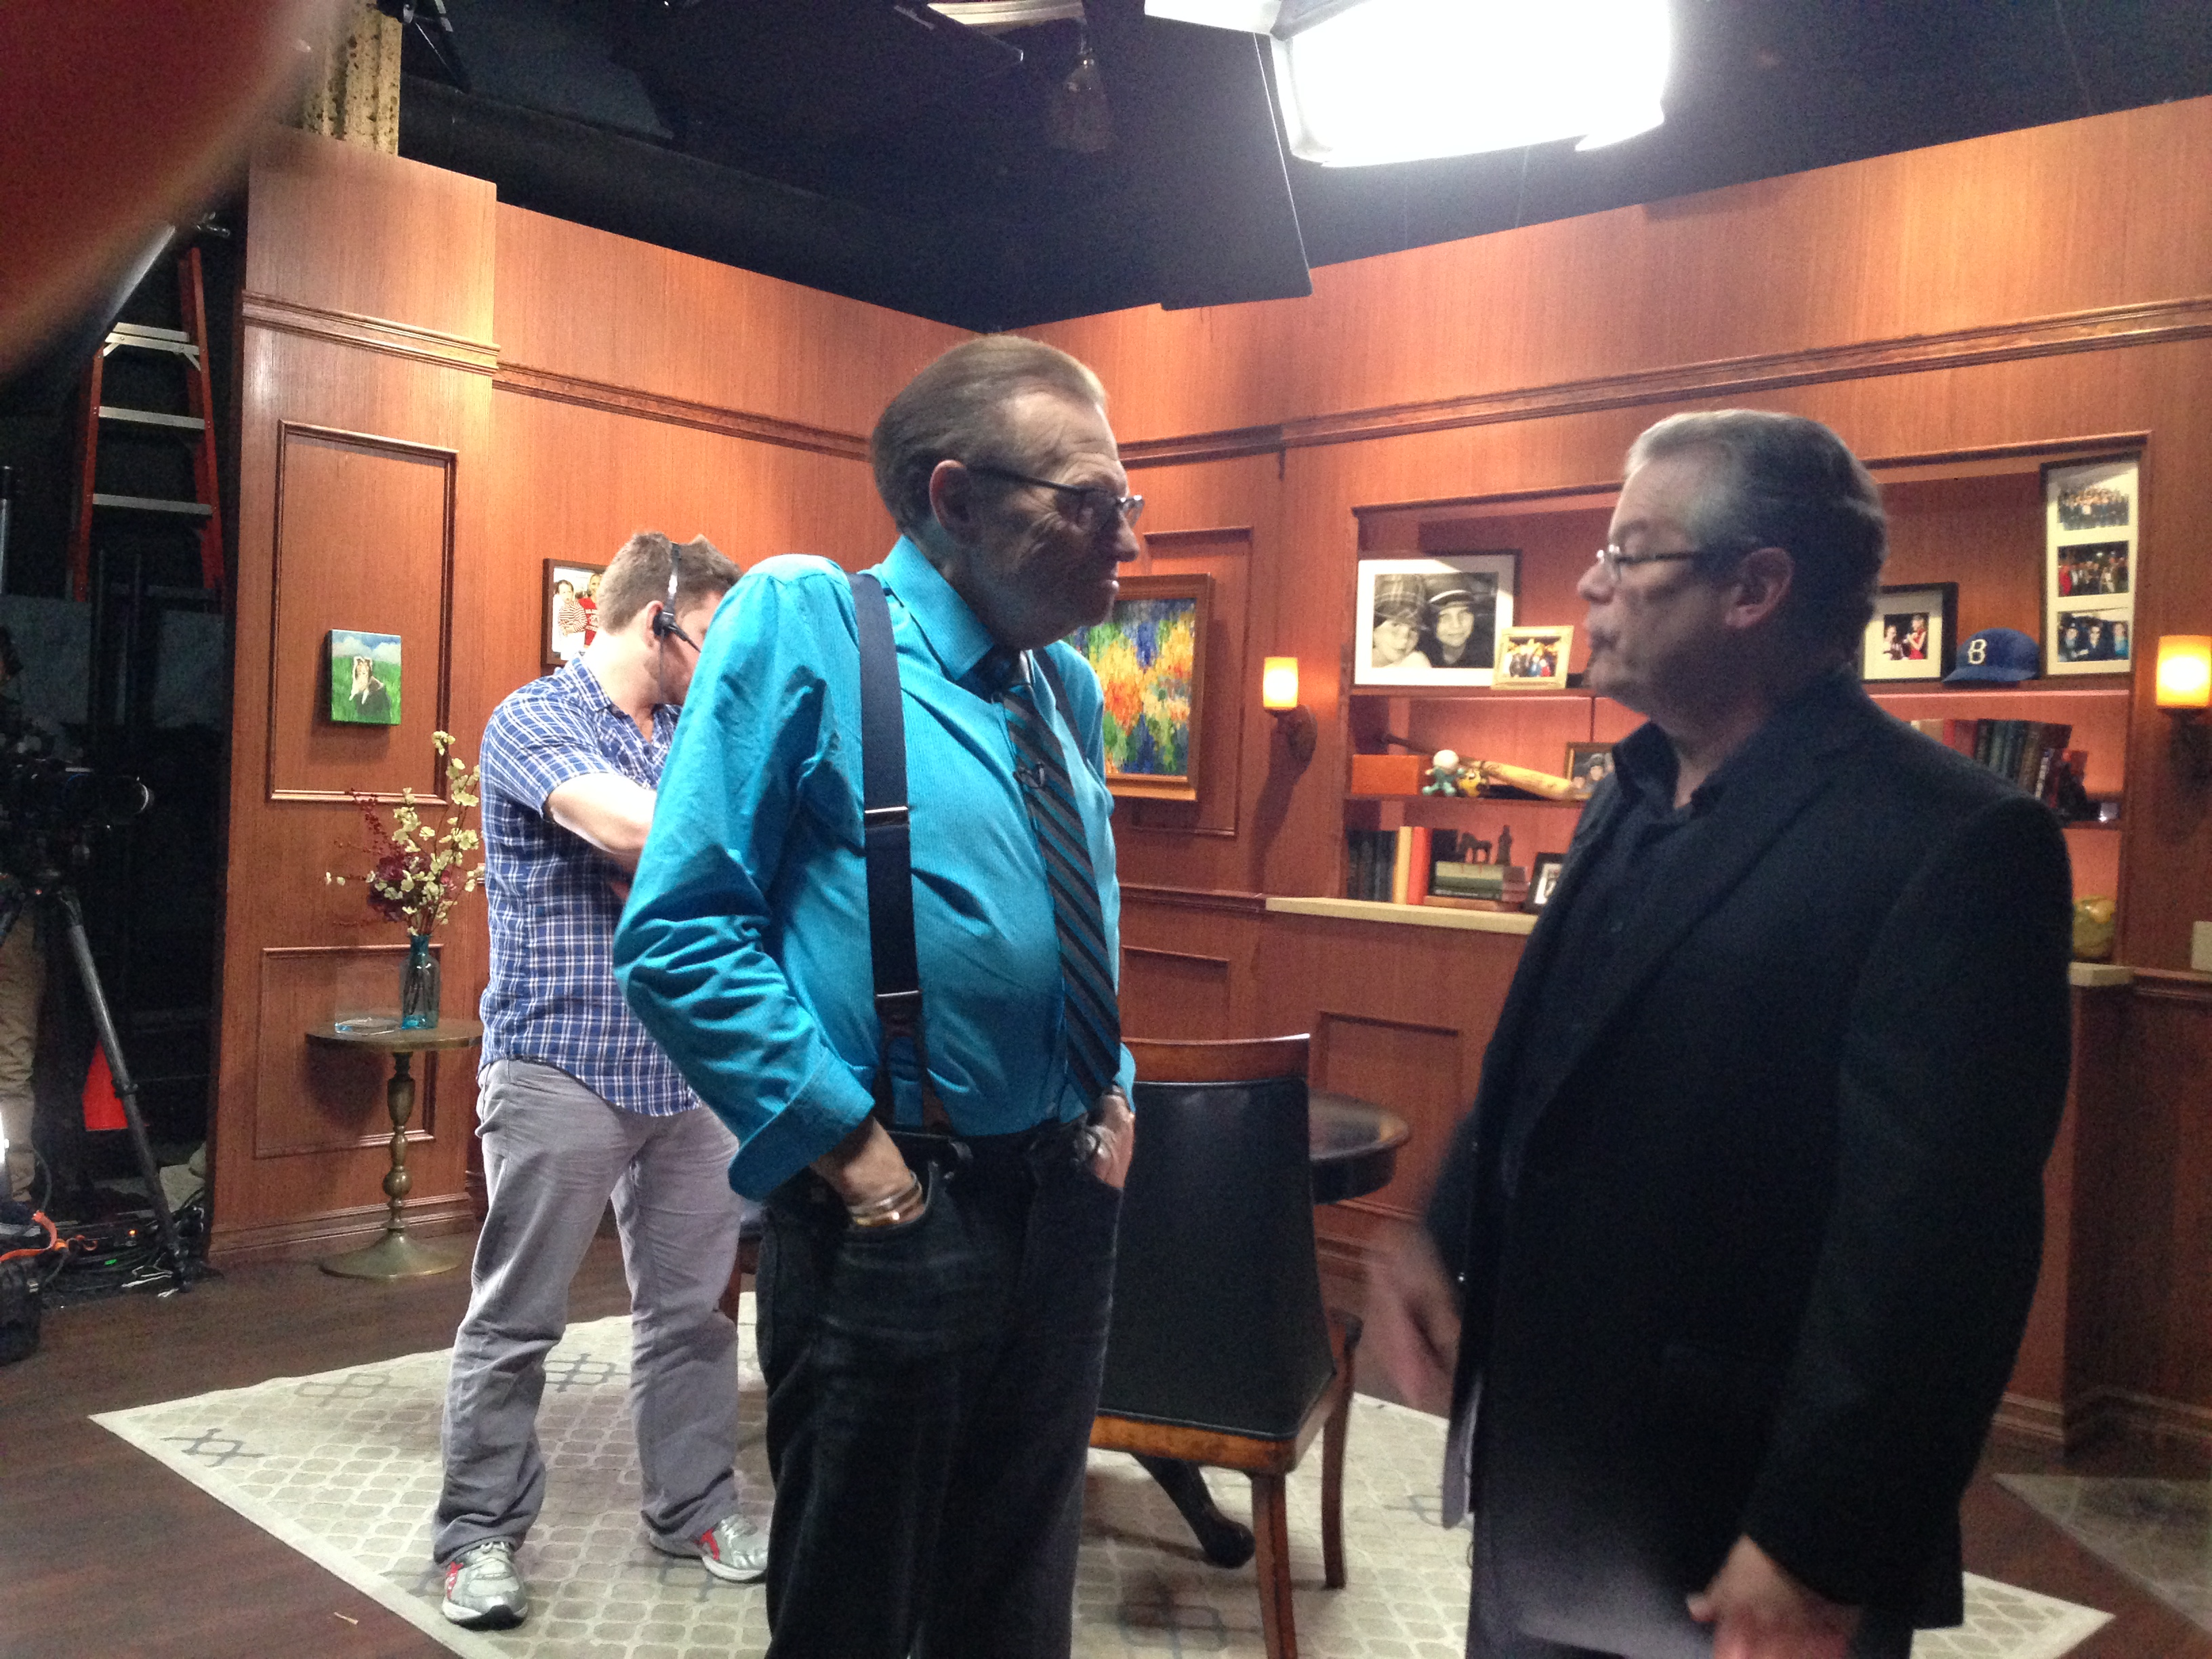 Larry King and Robert Greenberg chatting after the interview | OraTV